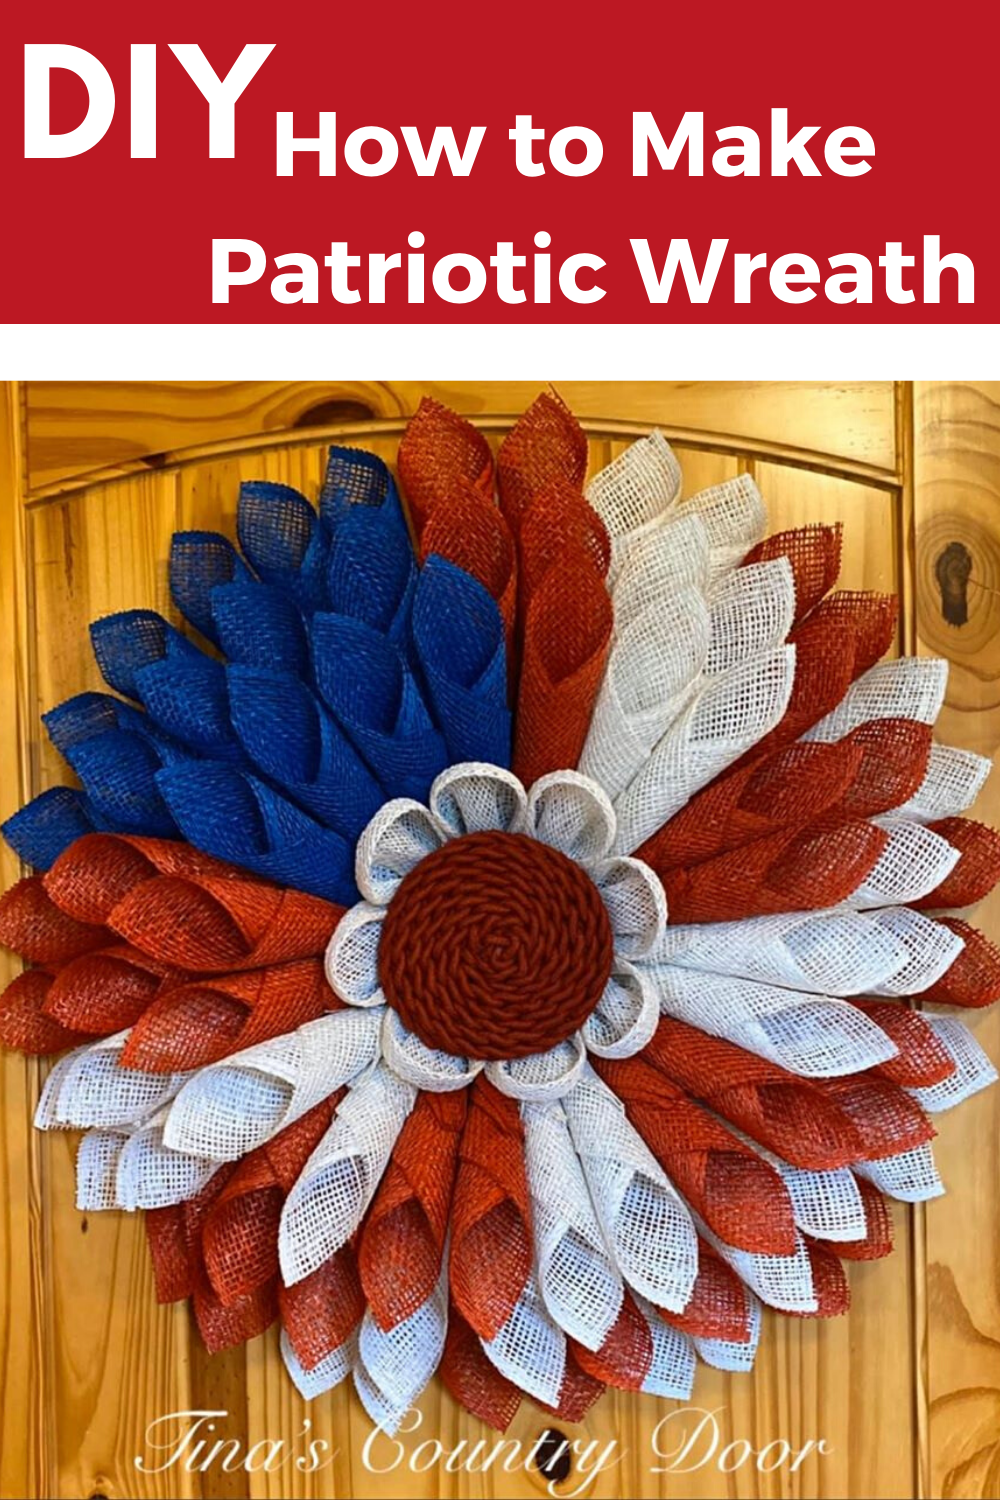 How to Make a Patriotic Wreath!